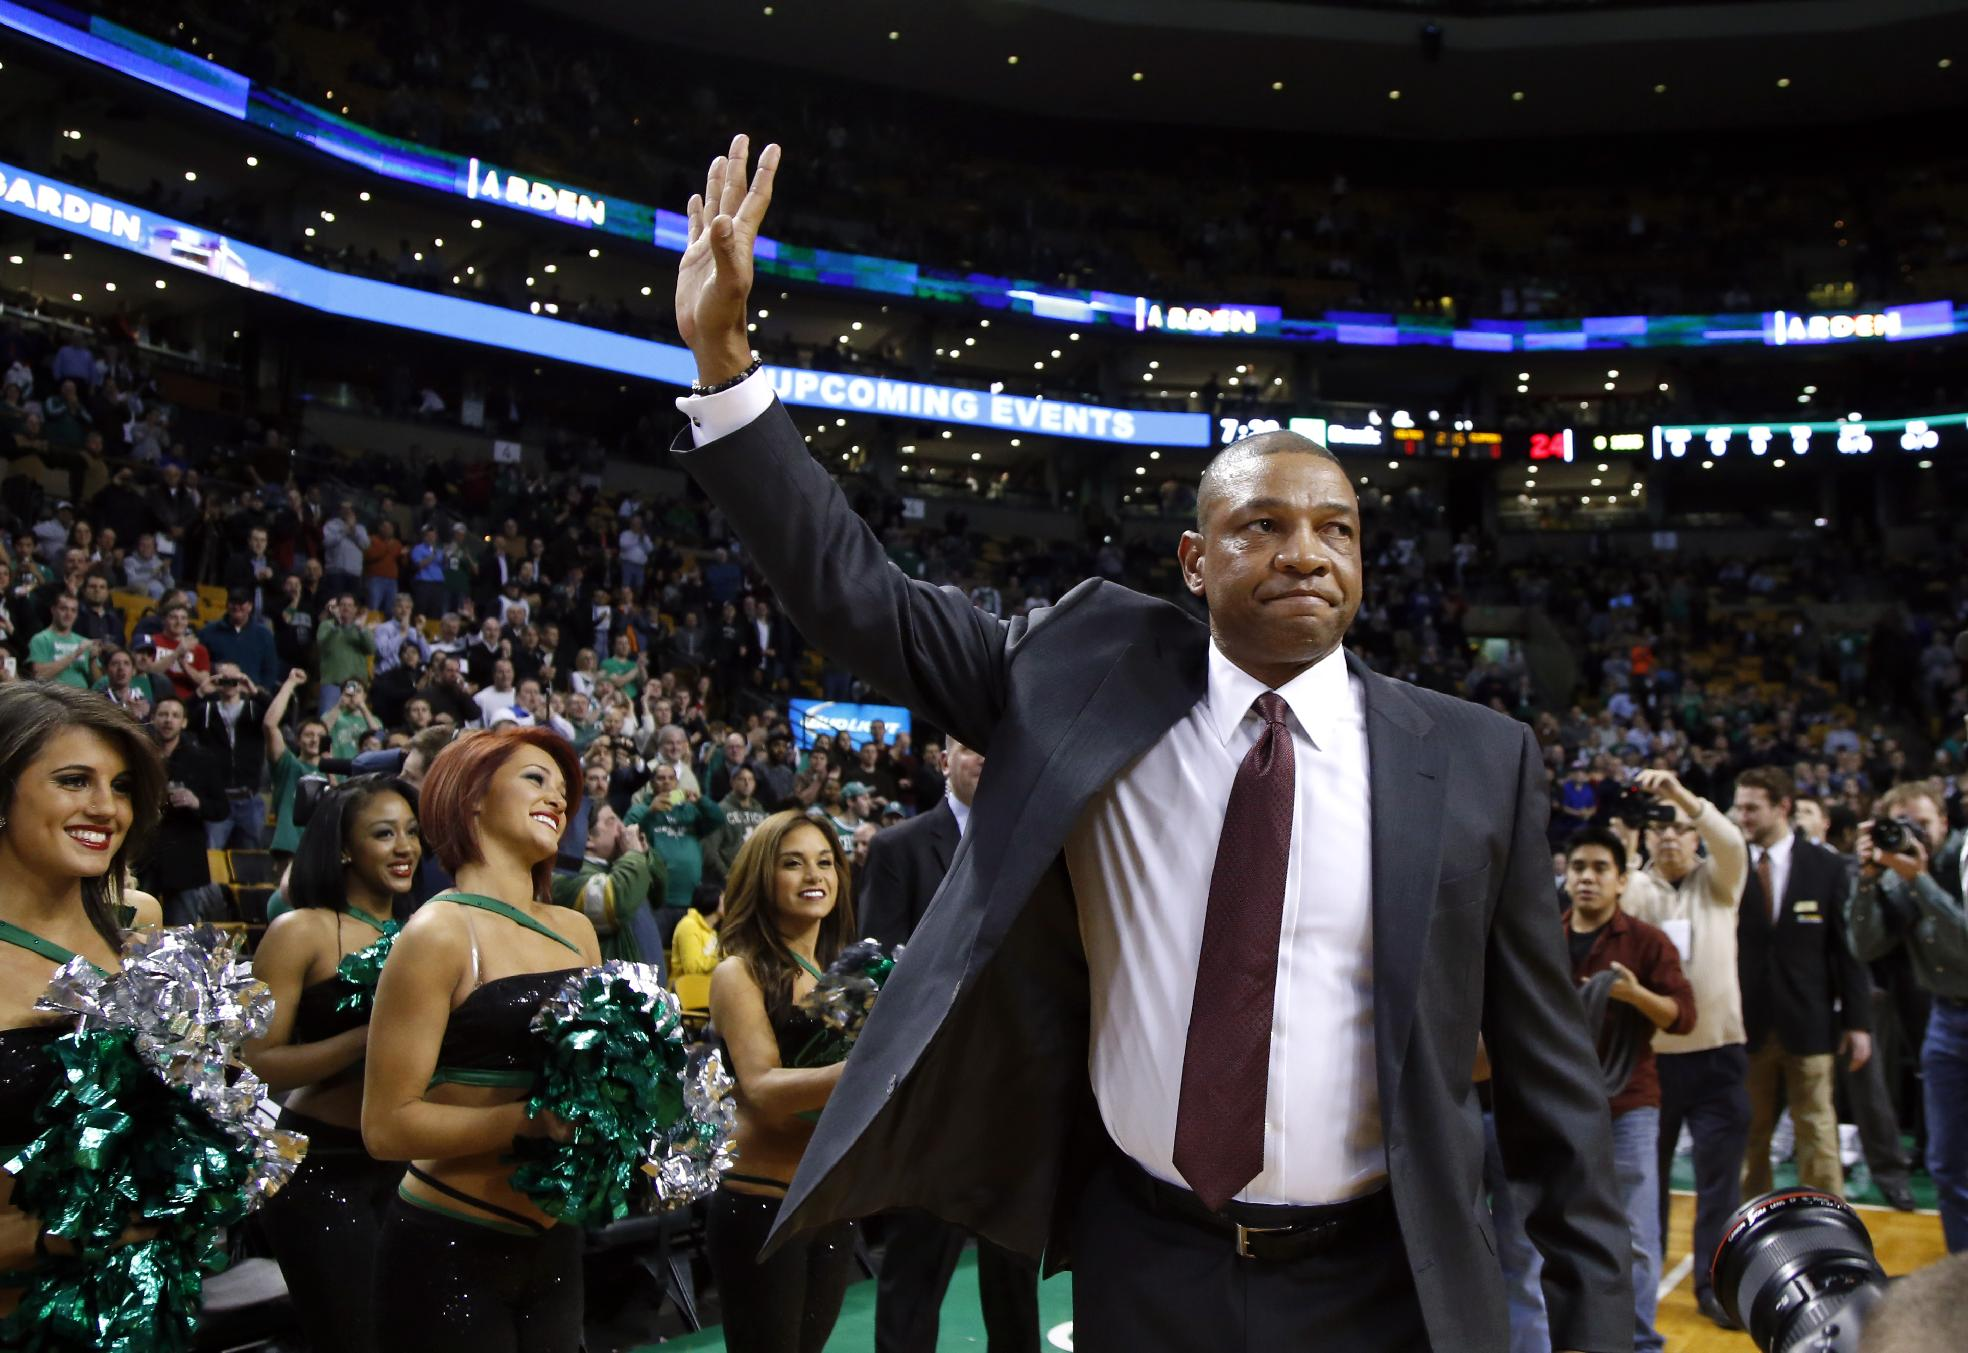 Doc Rivers, former head coach of the Boston Celtics and current head coach of the Los Angeles Clippers, waves to cheering fans as he enters the TD Garden floor for his first time back, before an NBA basketball game in Boston, Wednesday, Dec. 11, 2013